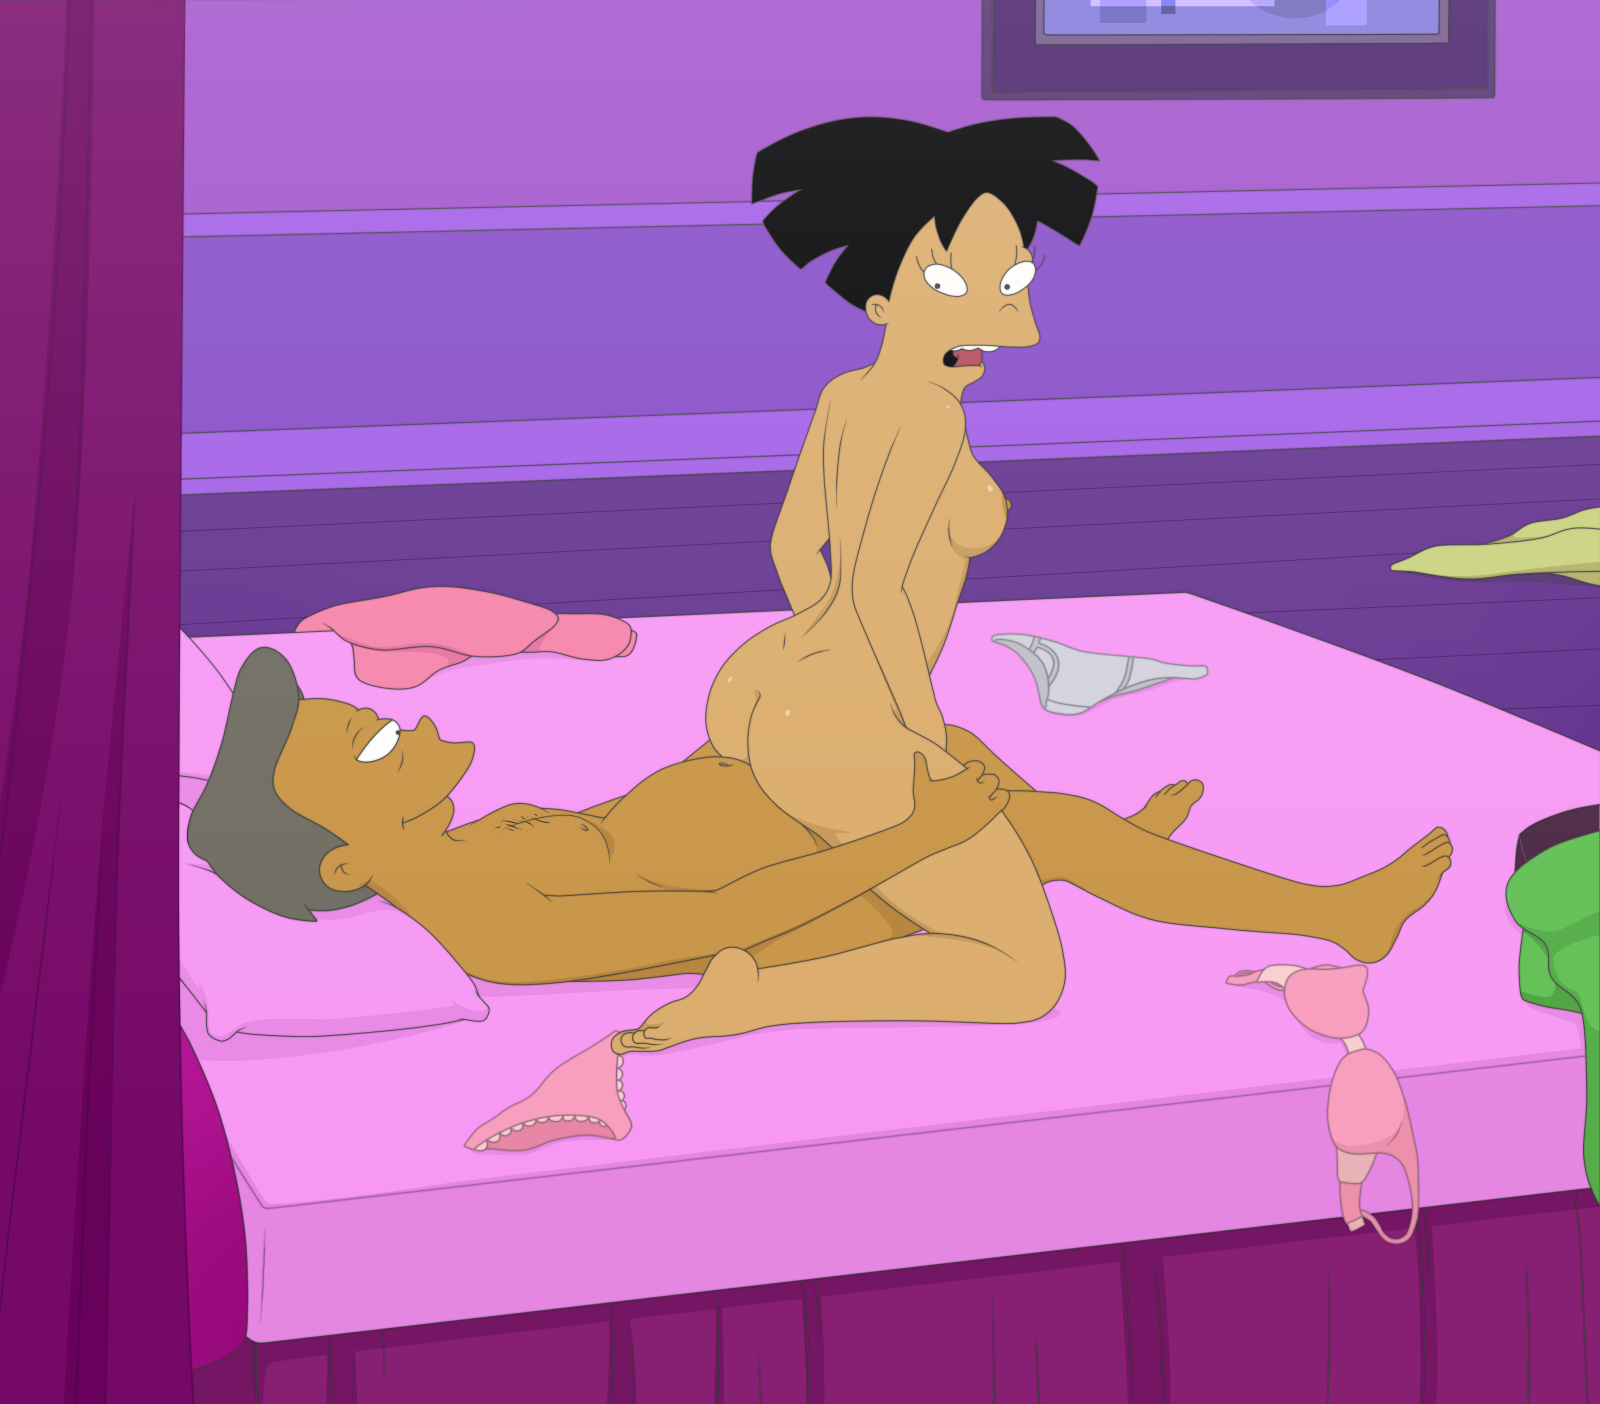 Futurama leela and amy nude are certainly